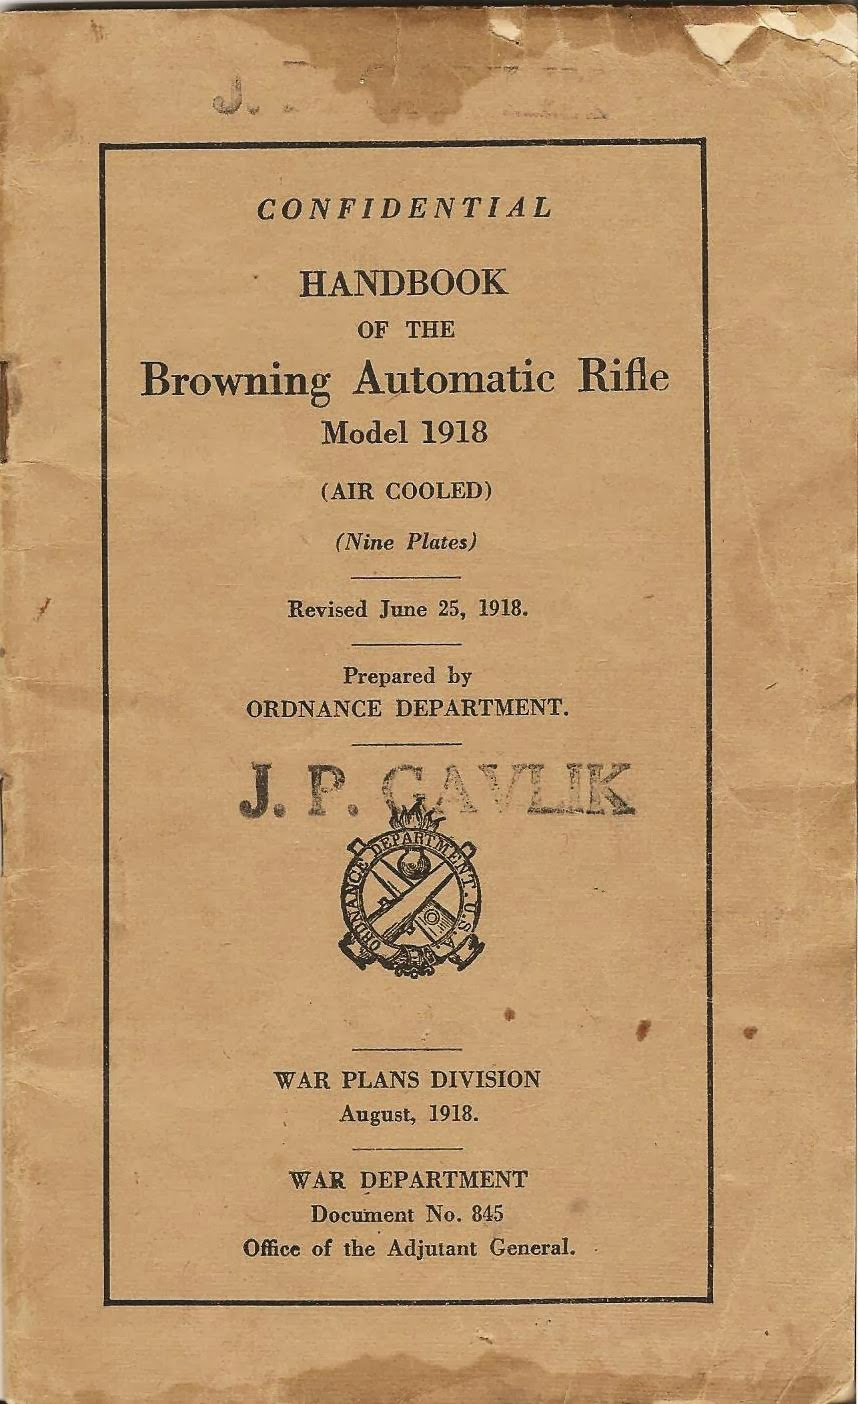 Handbook Model 1918 BAR Browning Automatic Rifle